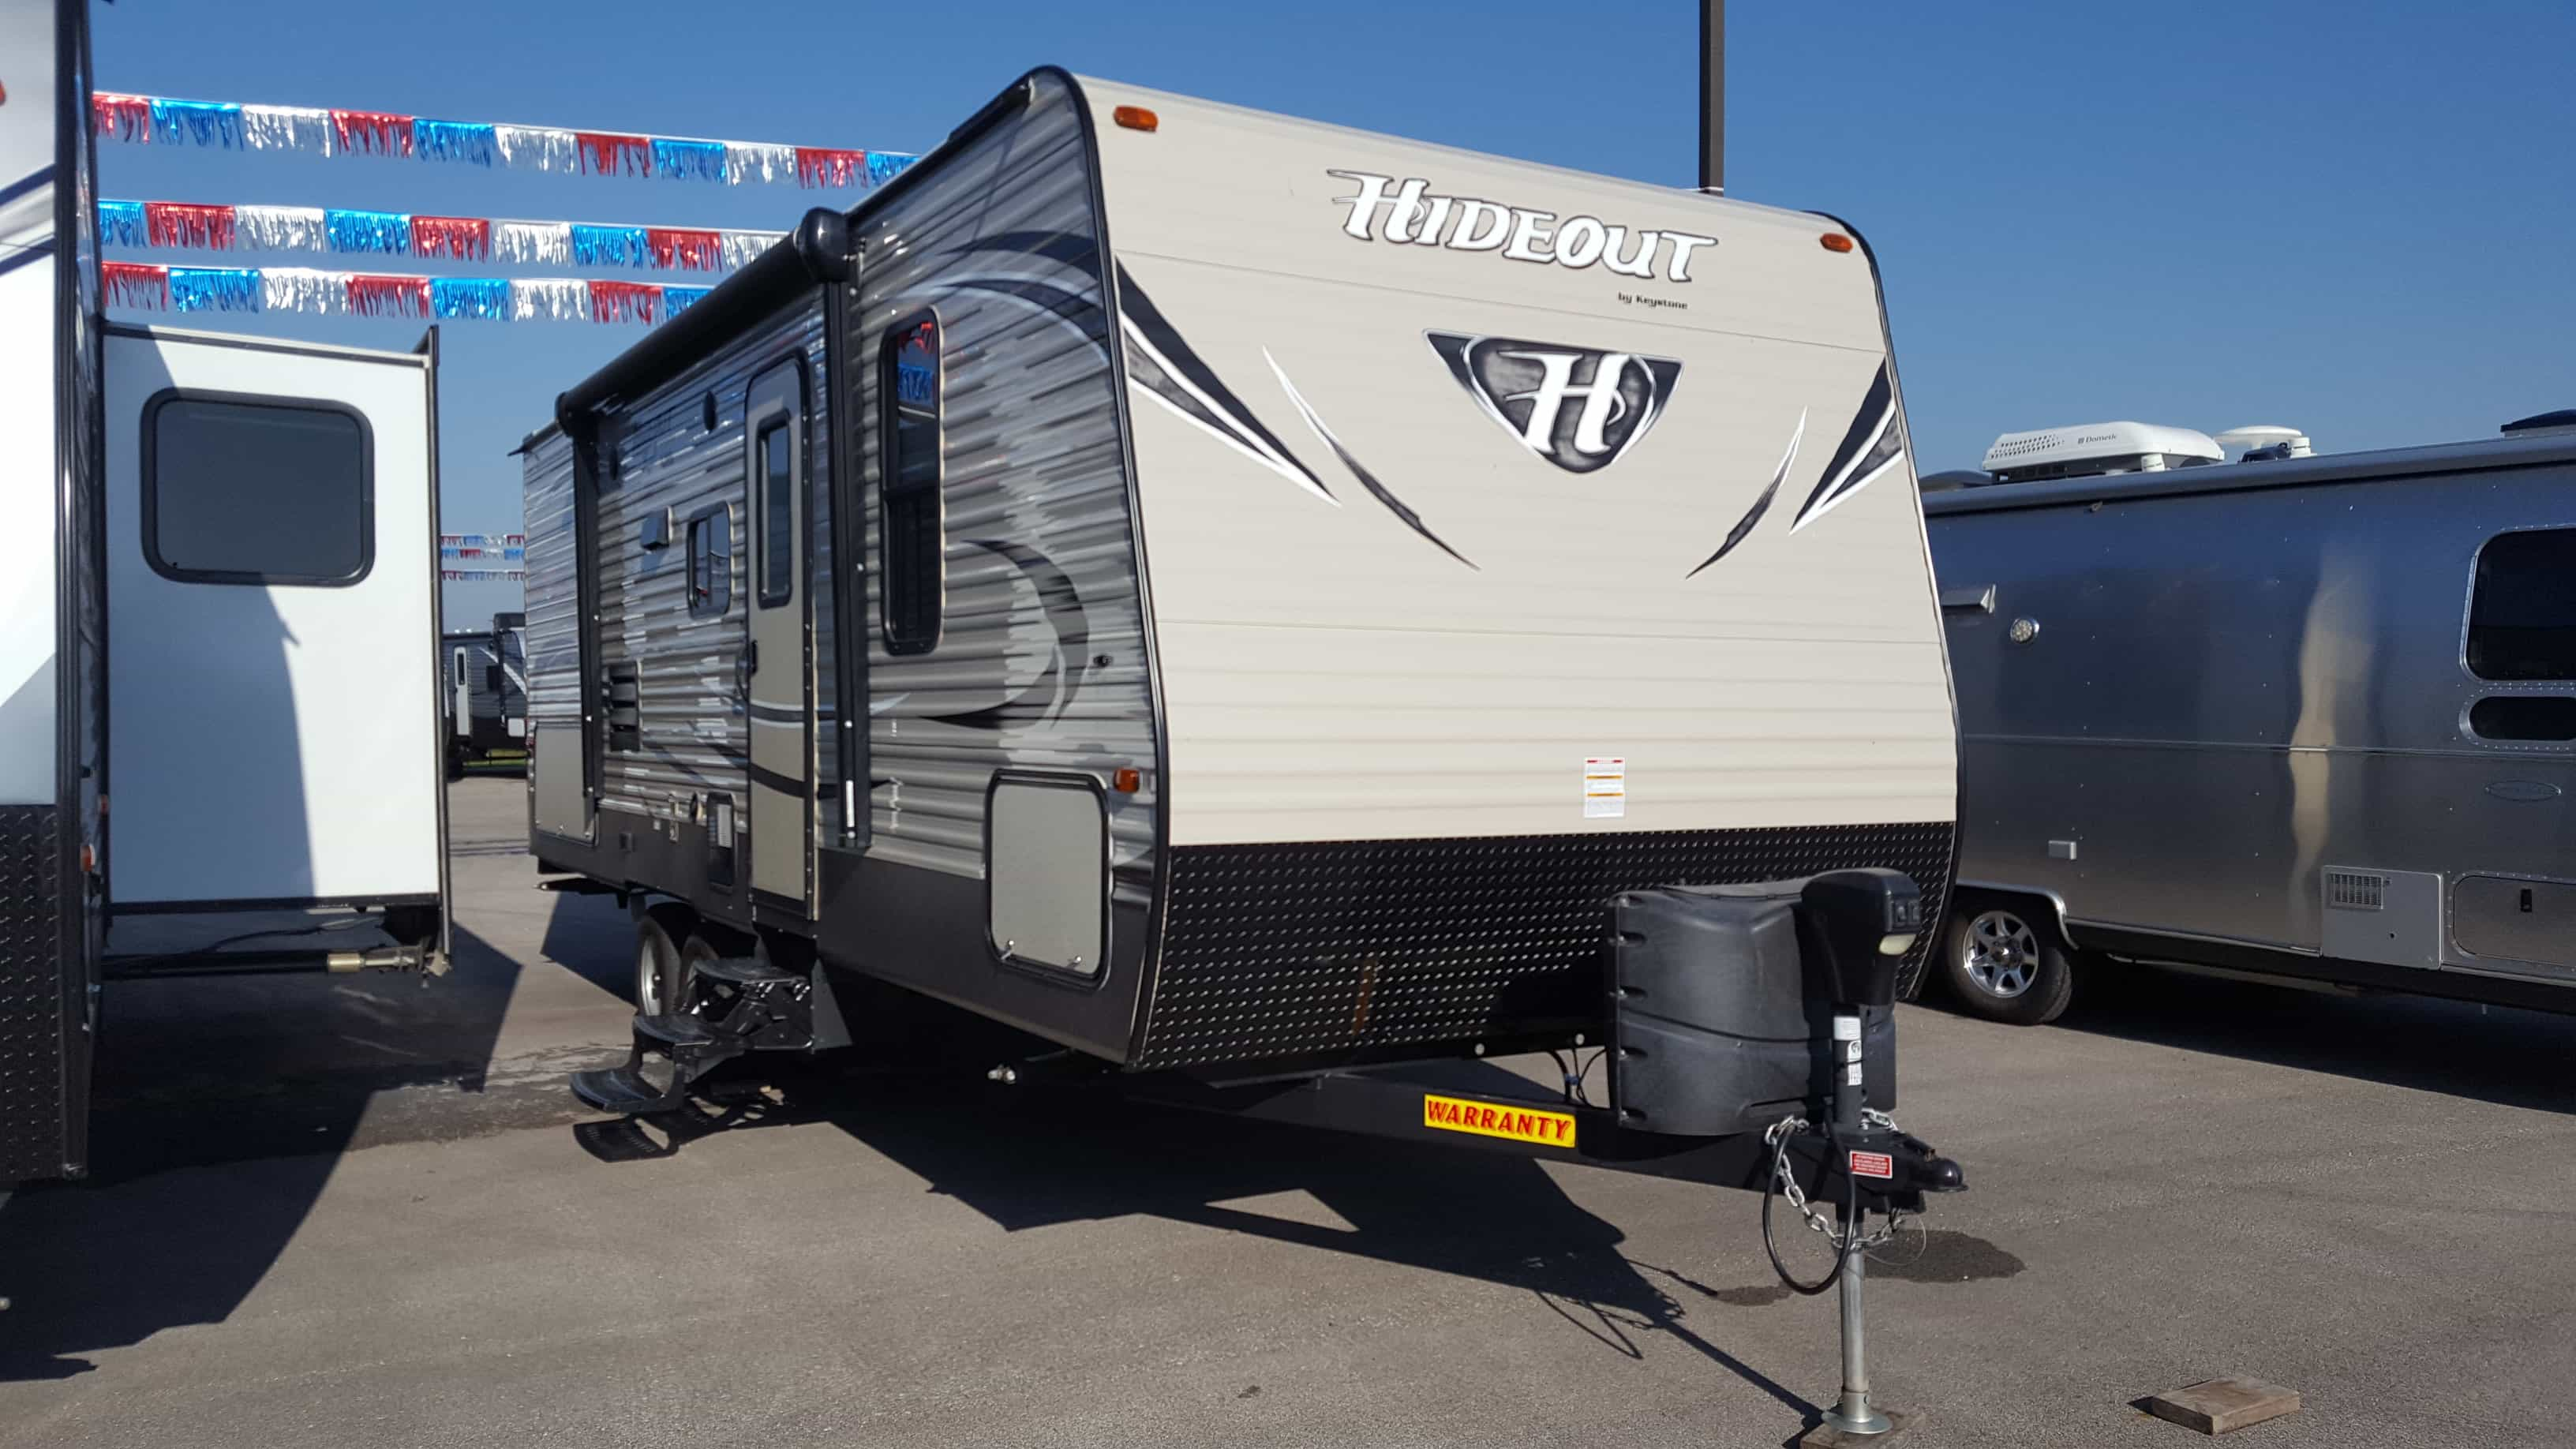 USED 2016 Keystone HIDEOUT LHS 232LHS - American RV